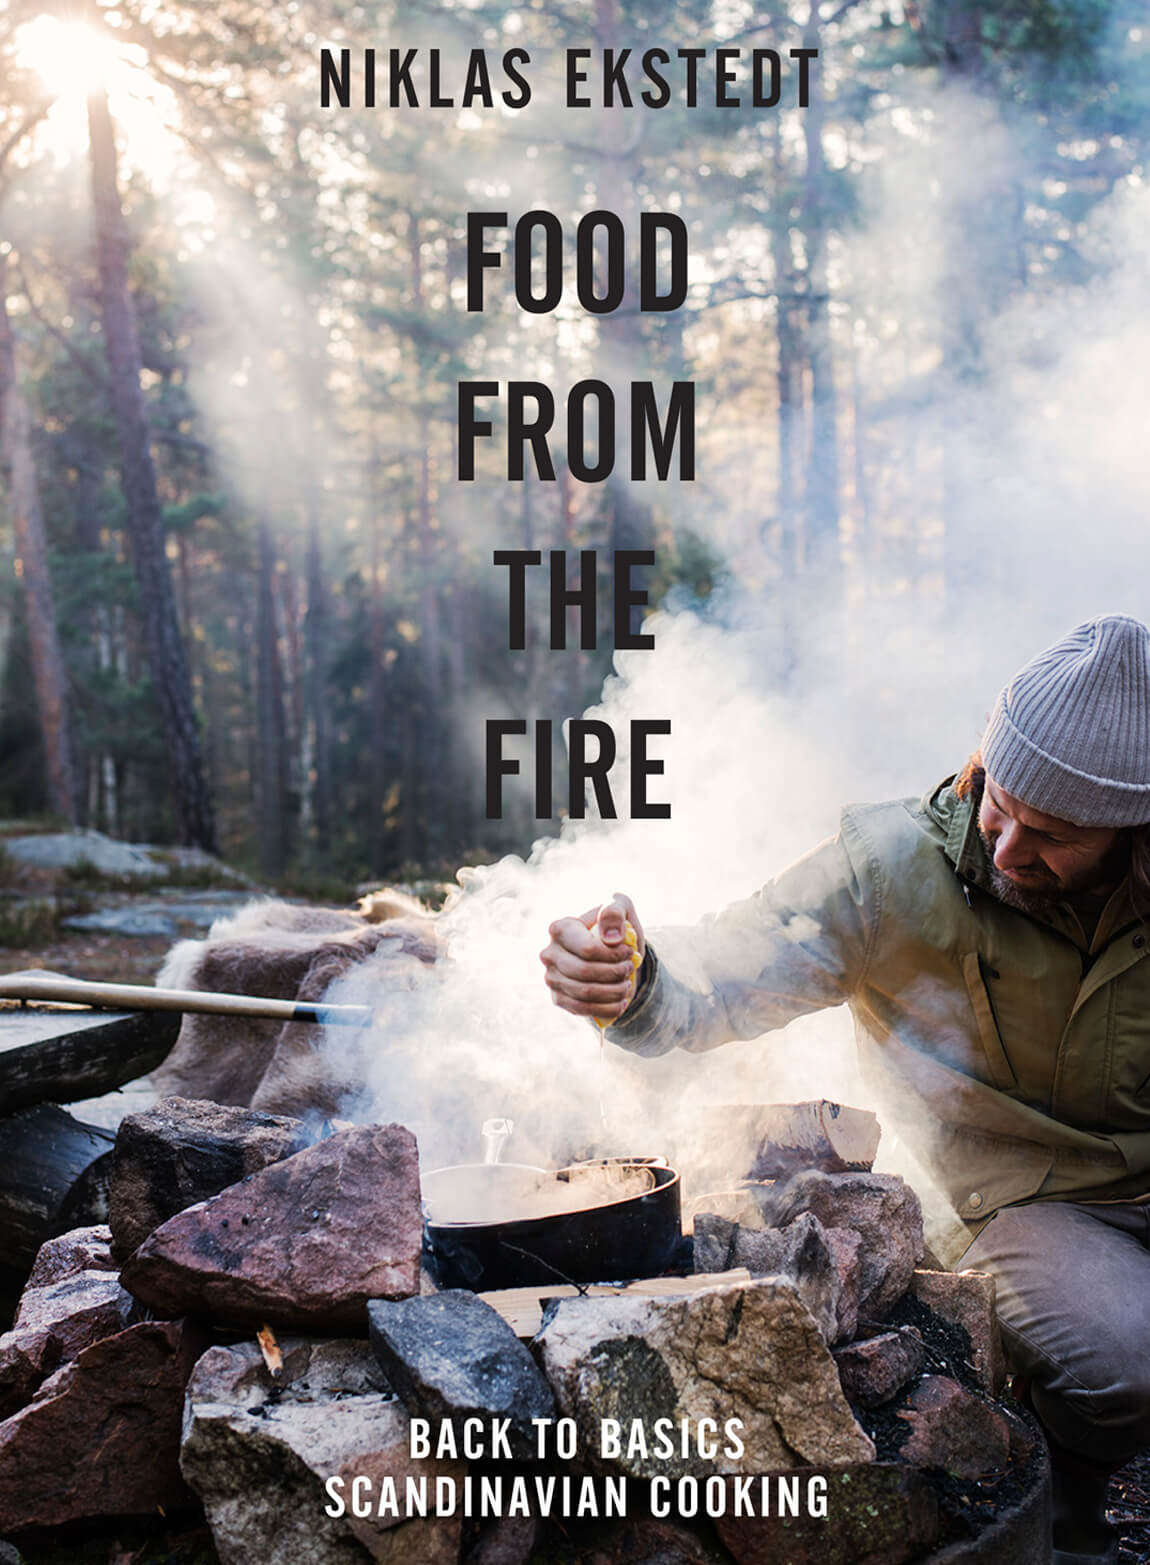 Food from the Fire: The Scandinavian Flavours of Open-Fire Cooking by Niklas Ekstedt, published by Pavilion Books.  Photo: Haarala Hamilton.